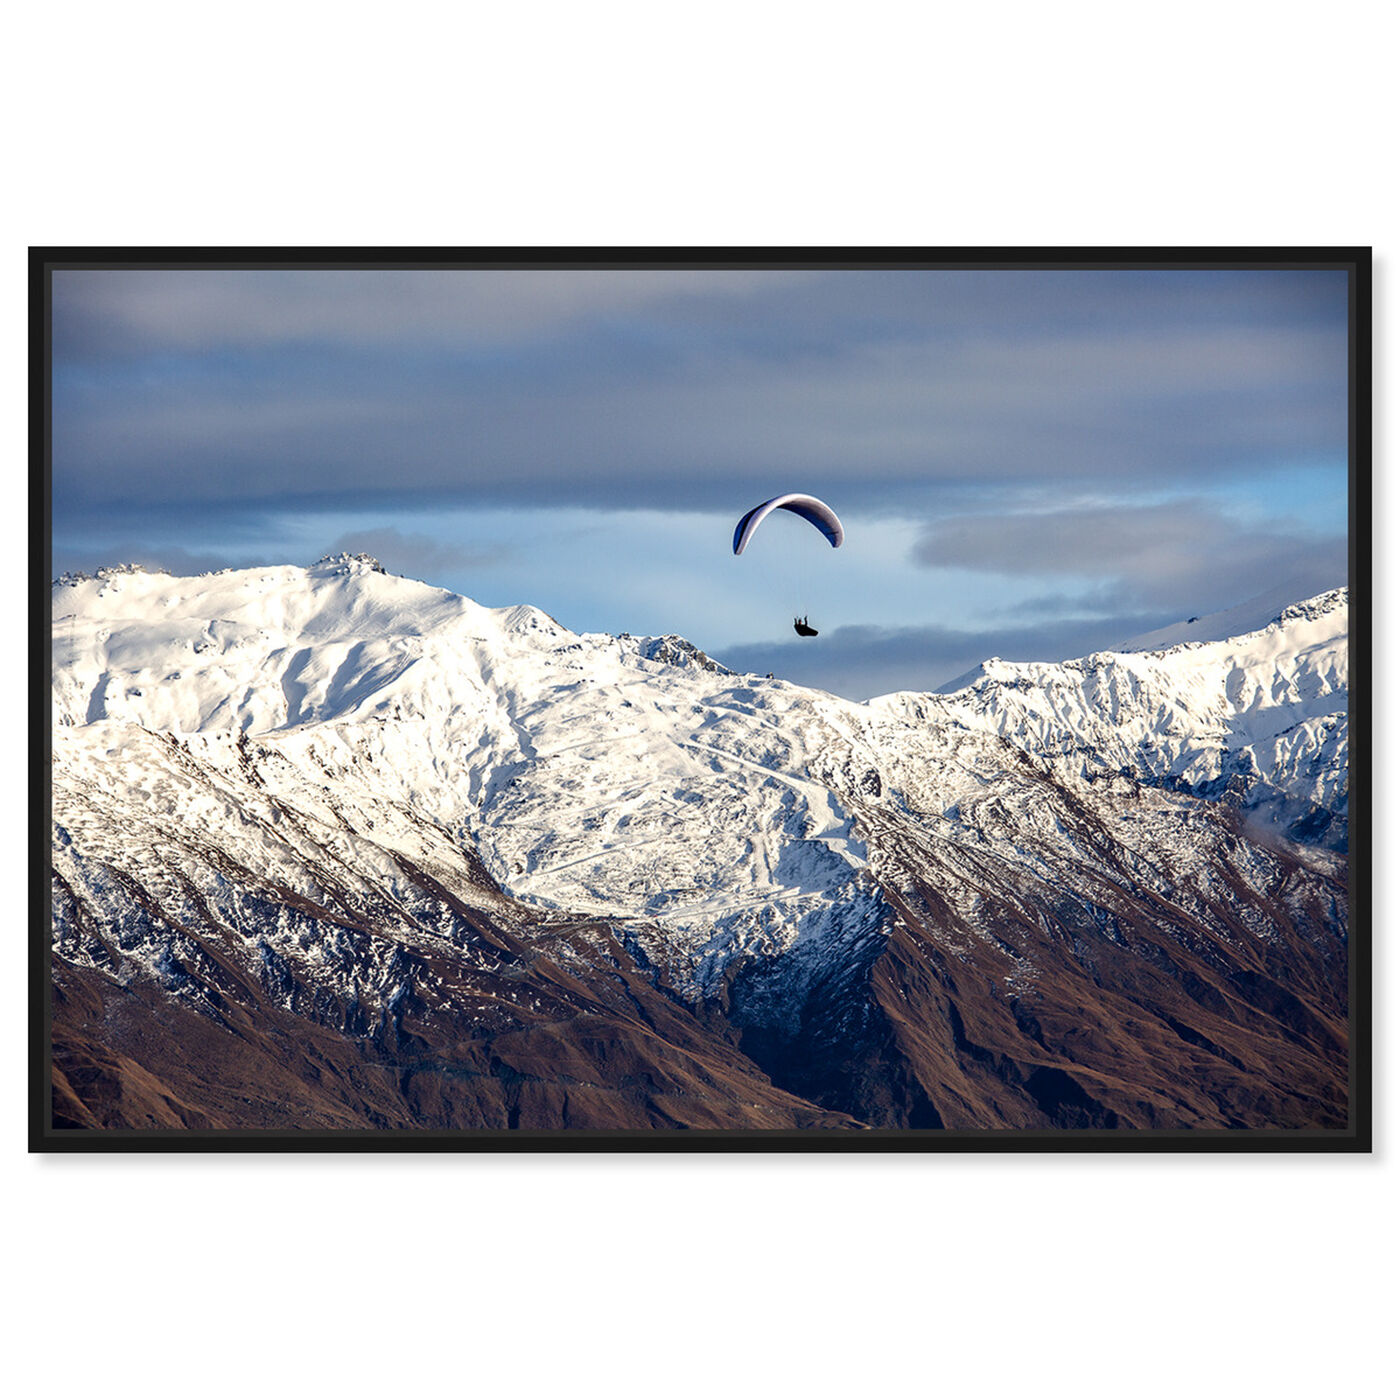 Front view of Curro Cardenal - Paragliding Free featuring nature and landscape and mountains art.